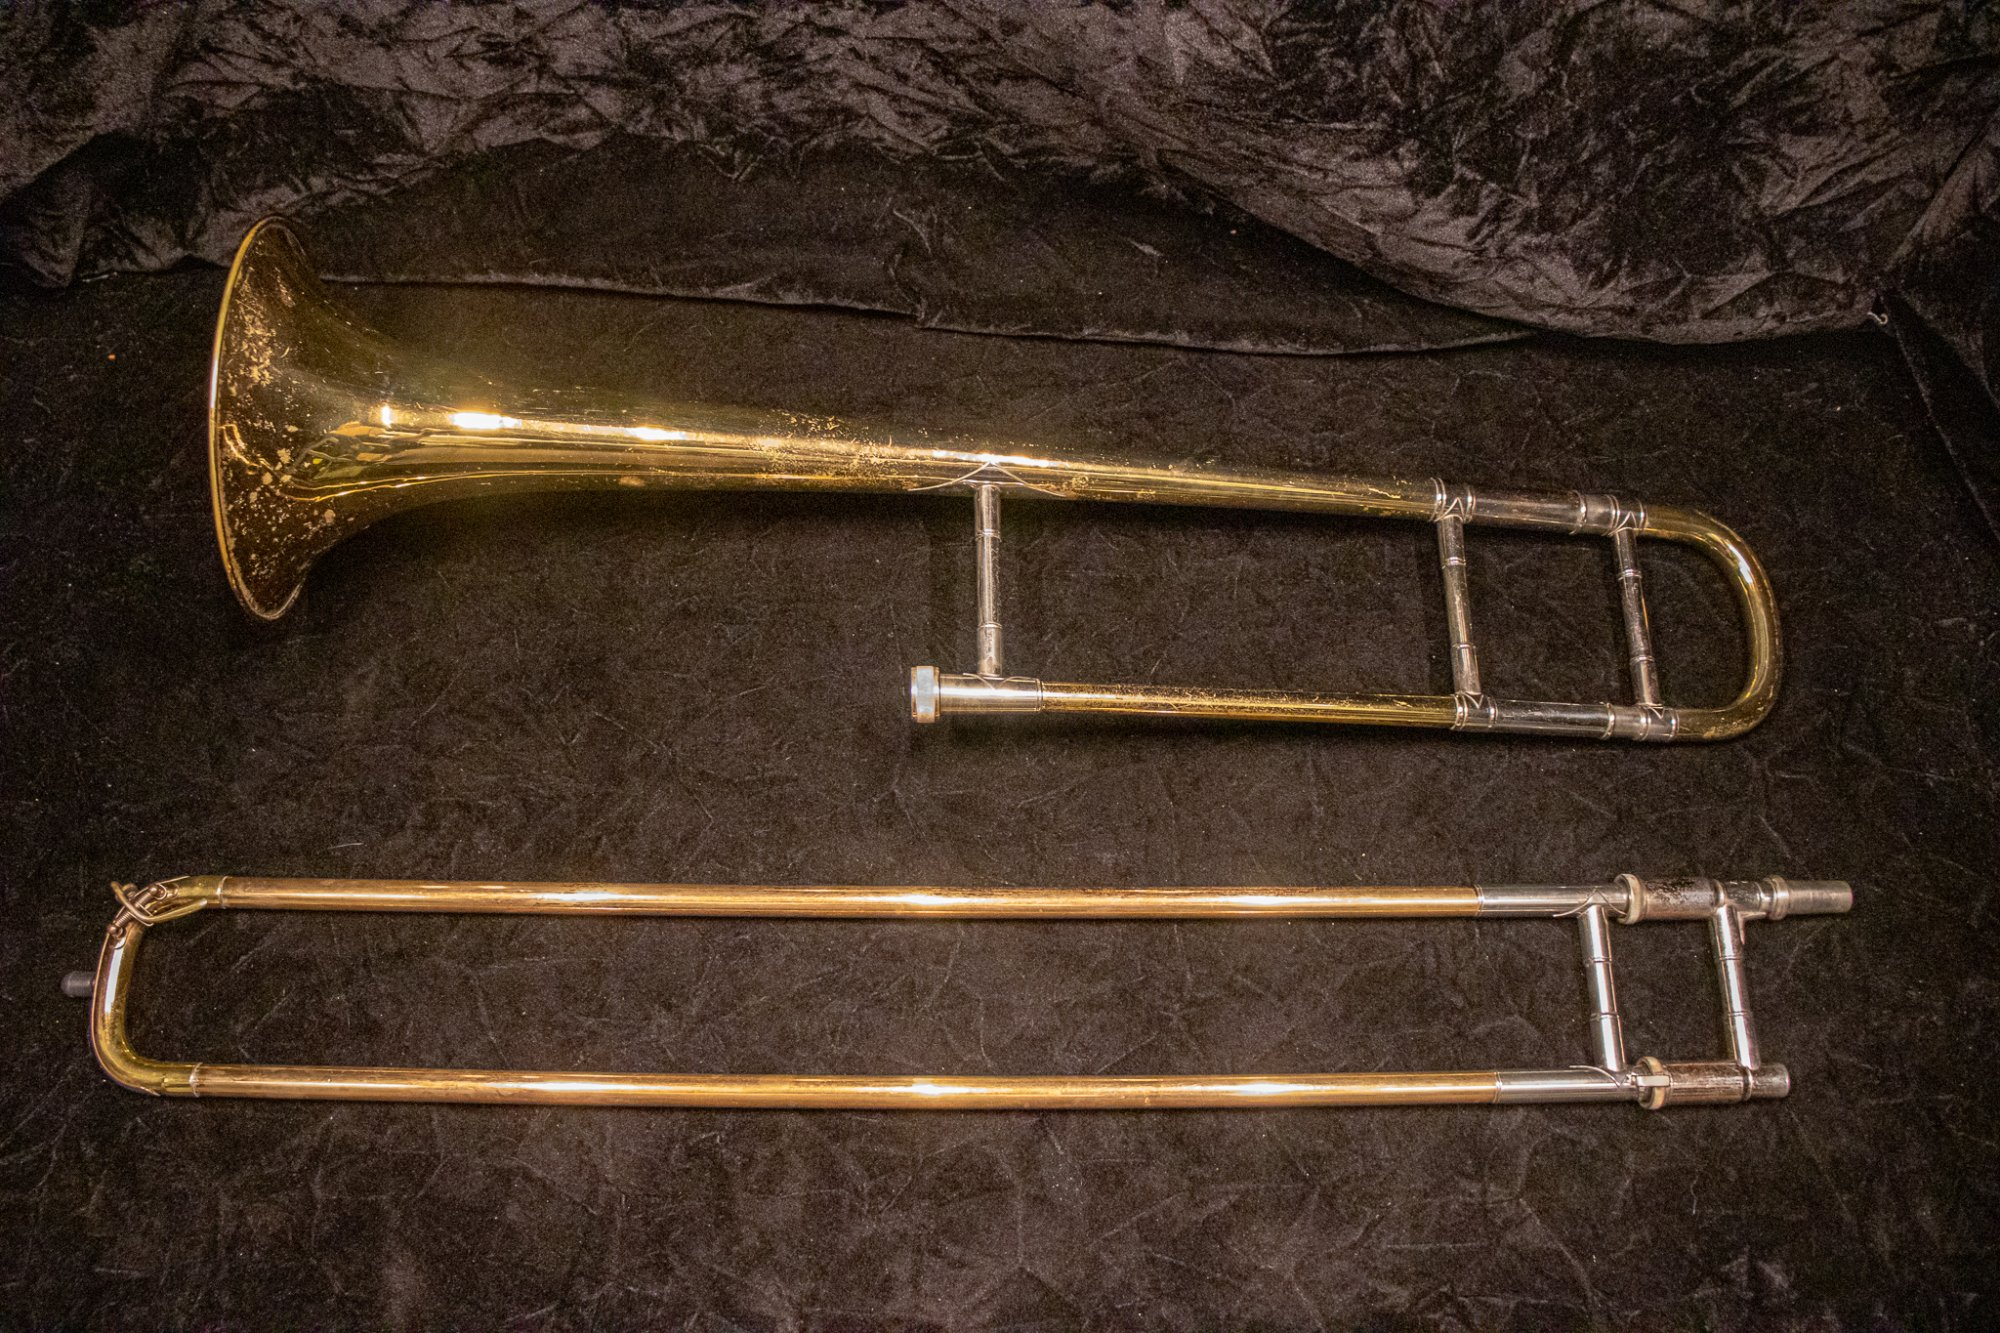 1939 Bach Model 6iv - Bones Malone Collection